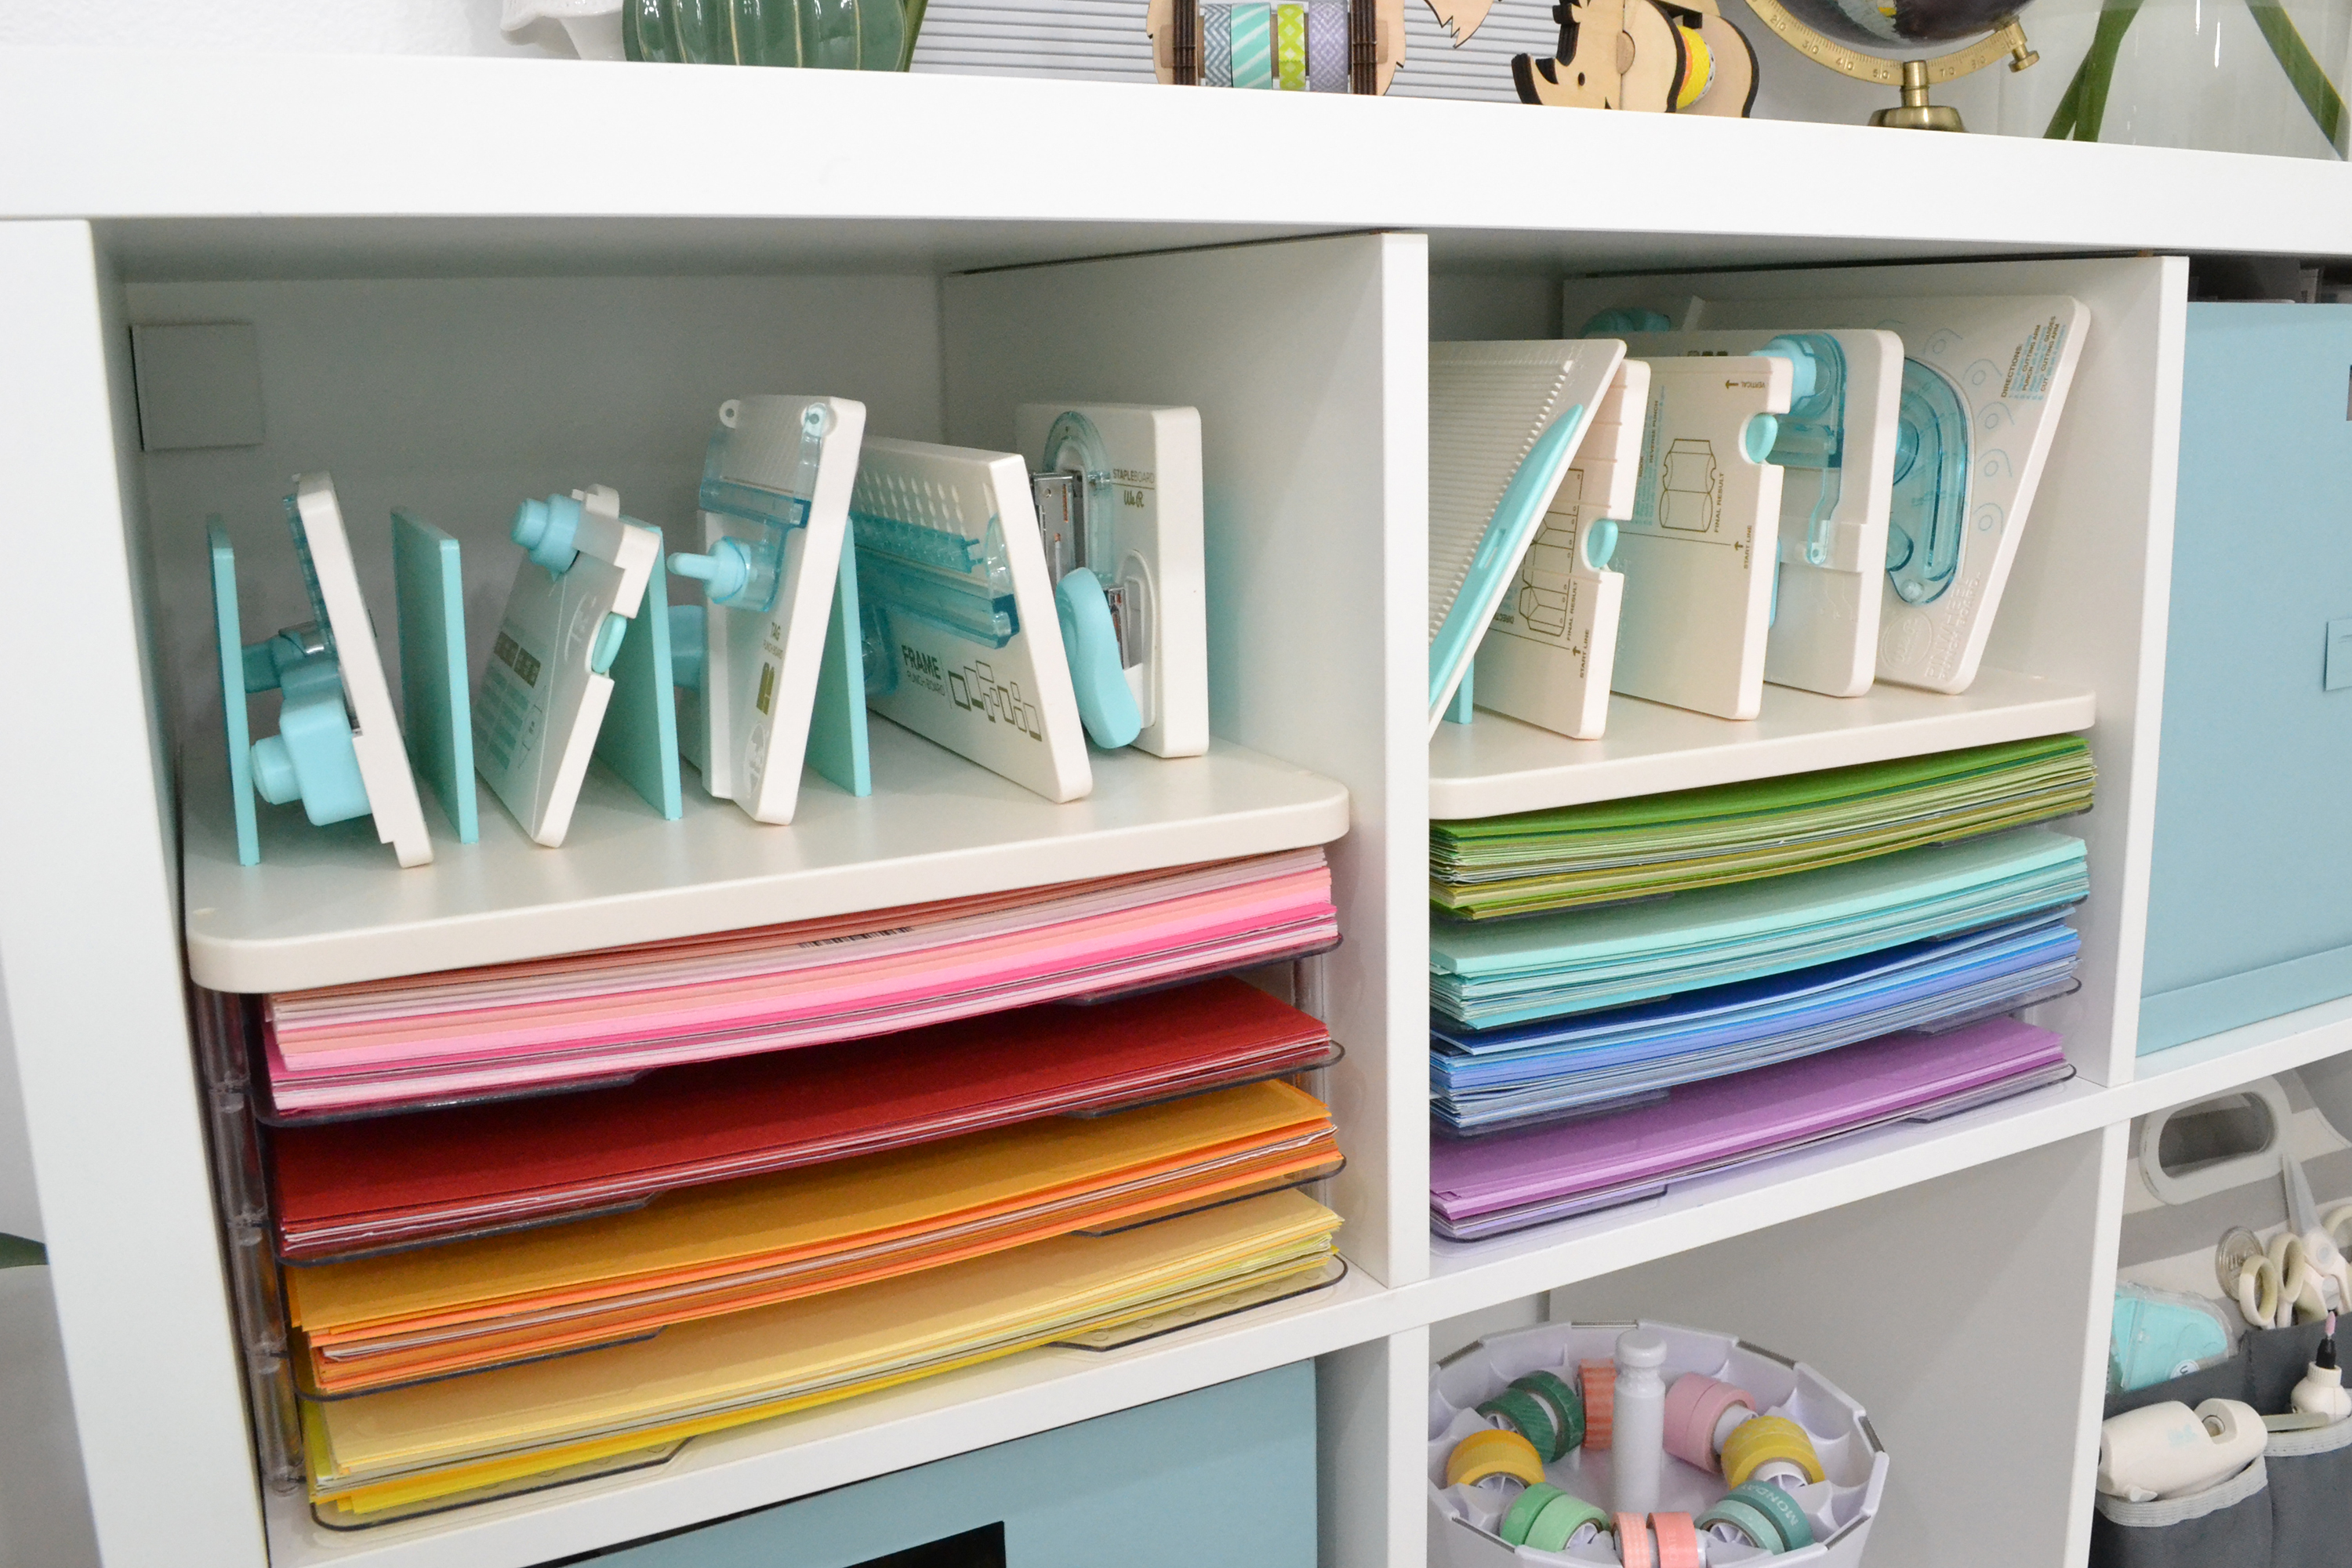 We R Memory Keepers Punch Board Storage featured in Aly Dosdall's craft room